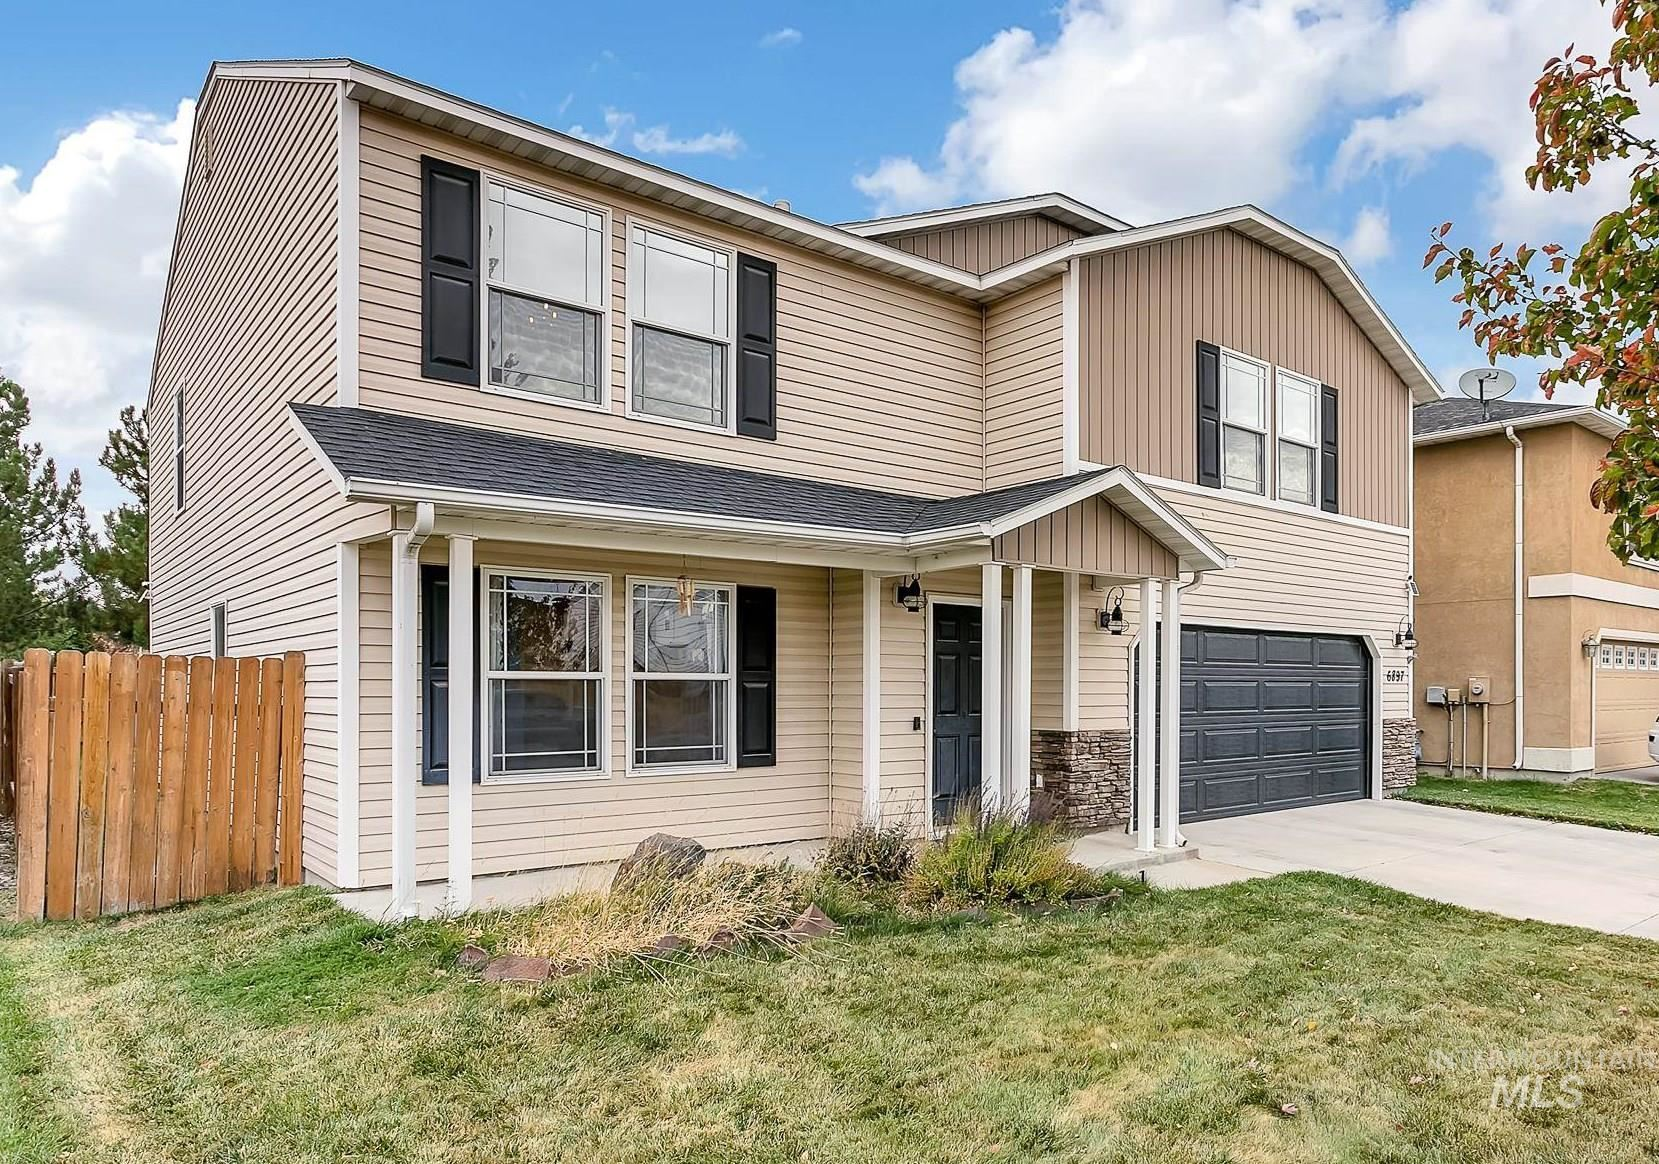 Photo of 6897 S Loganberry Way, Boise, ID 83709 (MLS # 98823564)